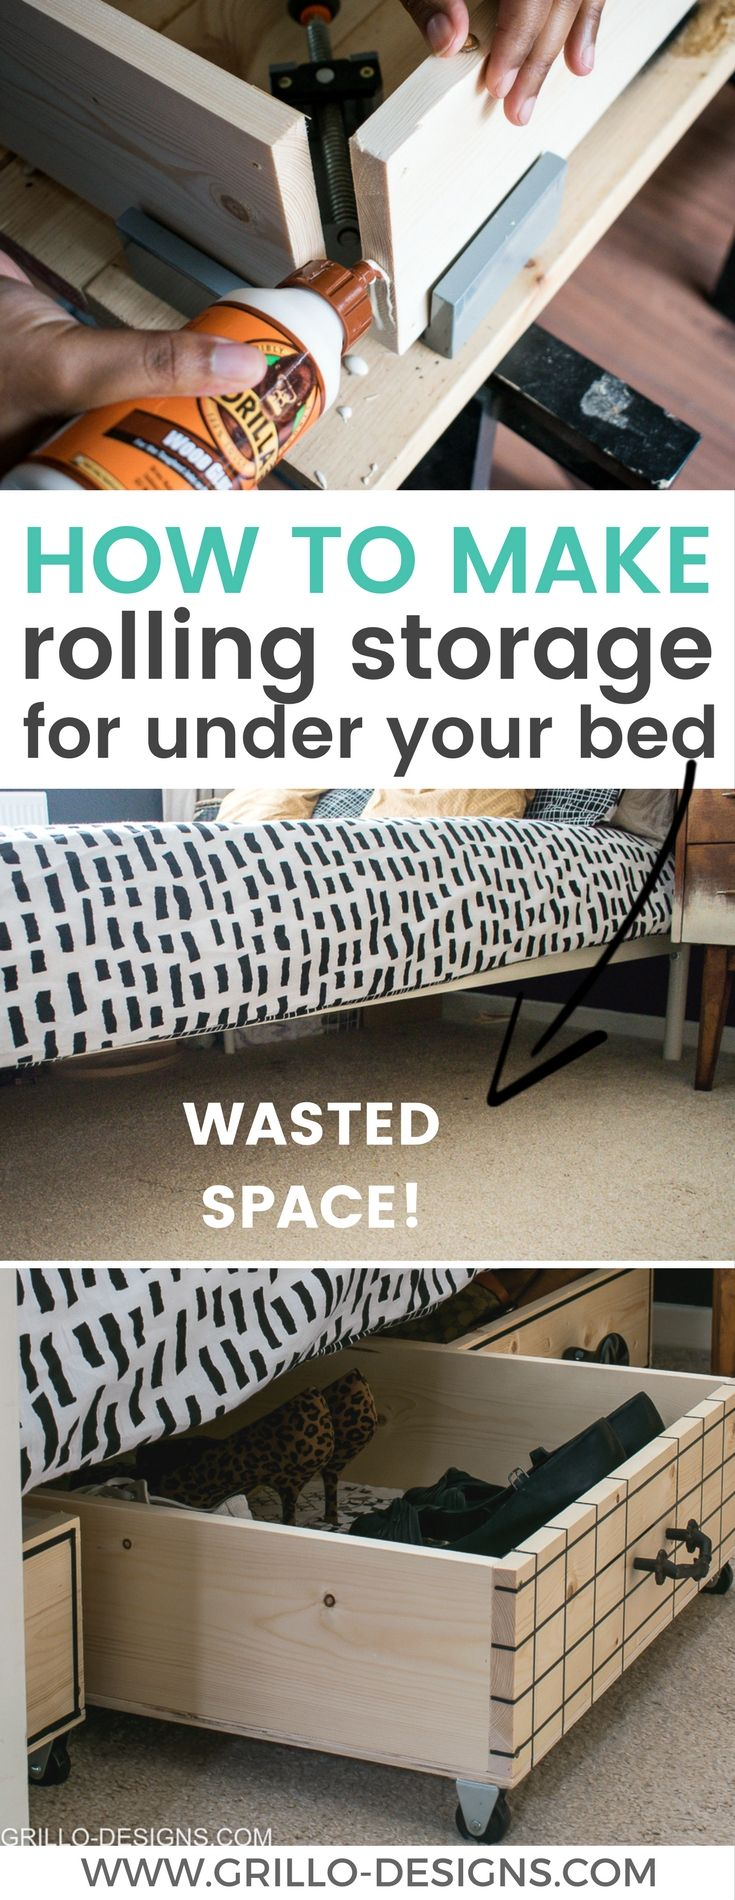 if your'e struggling for space in your bedroom - try making these rolling DIY under bed storage boxes. They are a great way to add storage to any room! Ive also rounded up some of my favourite modern vintage knobs!